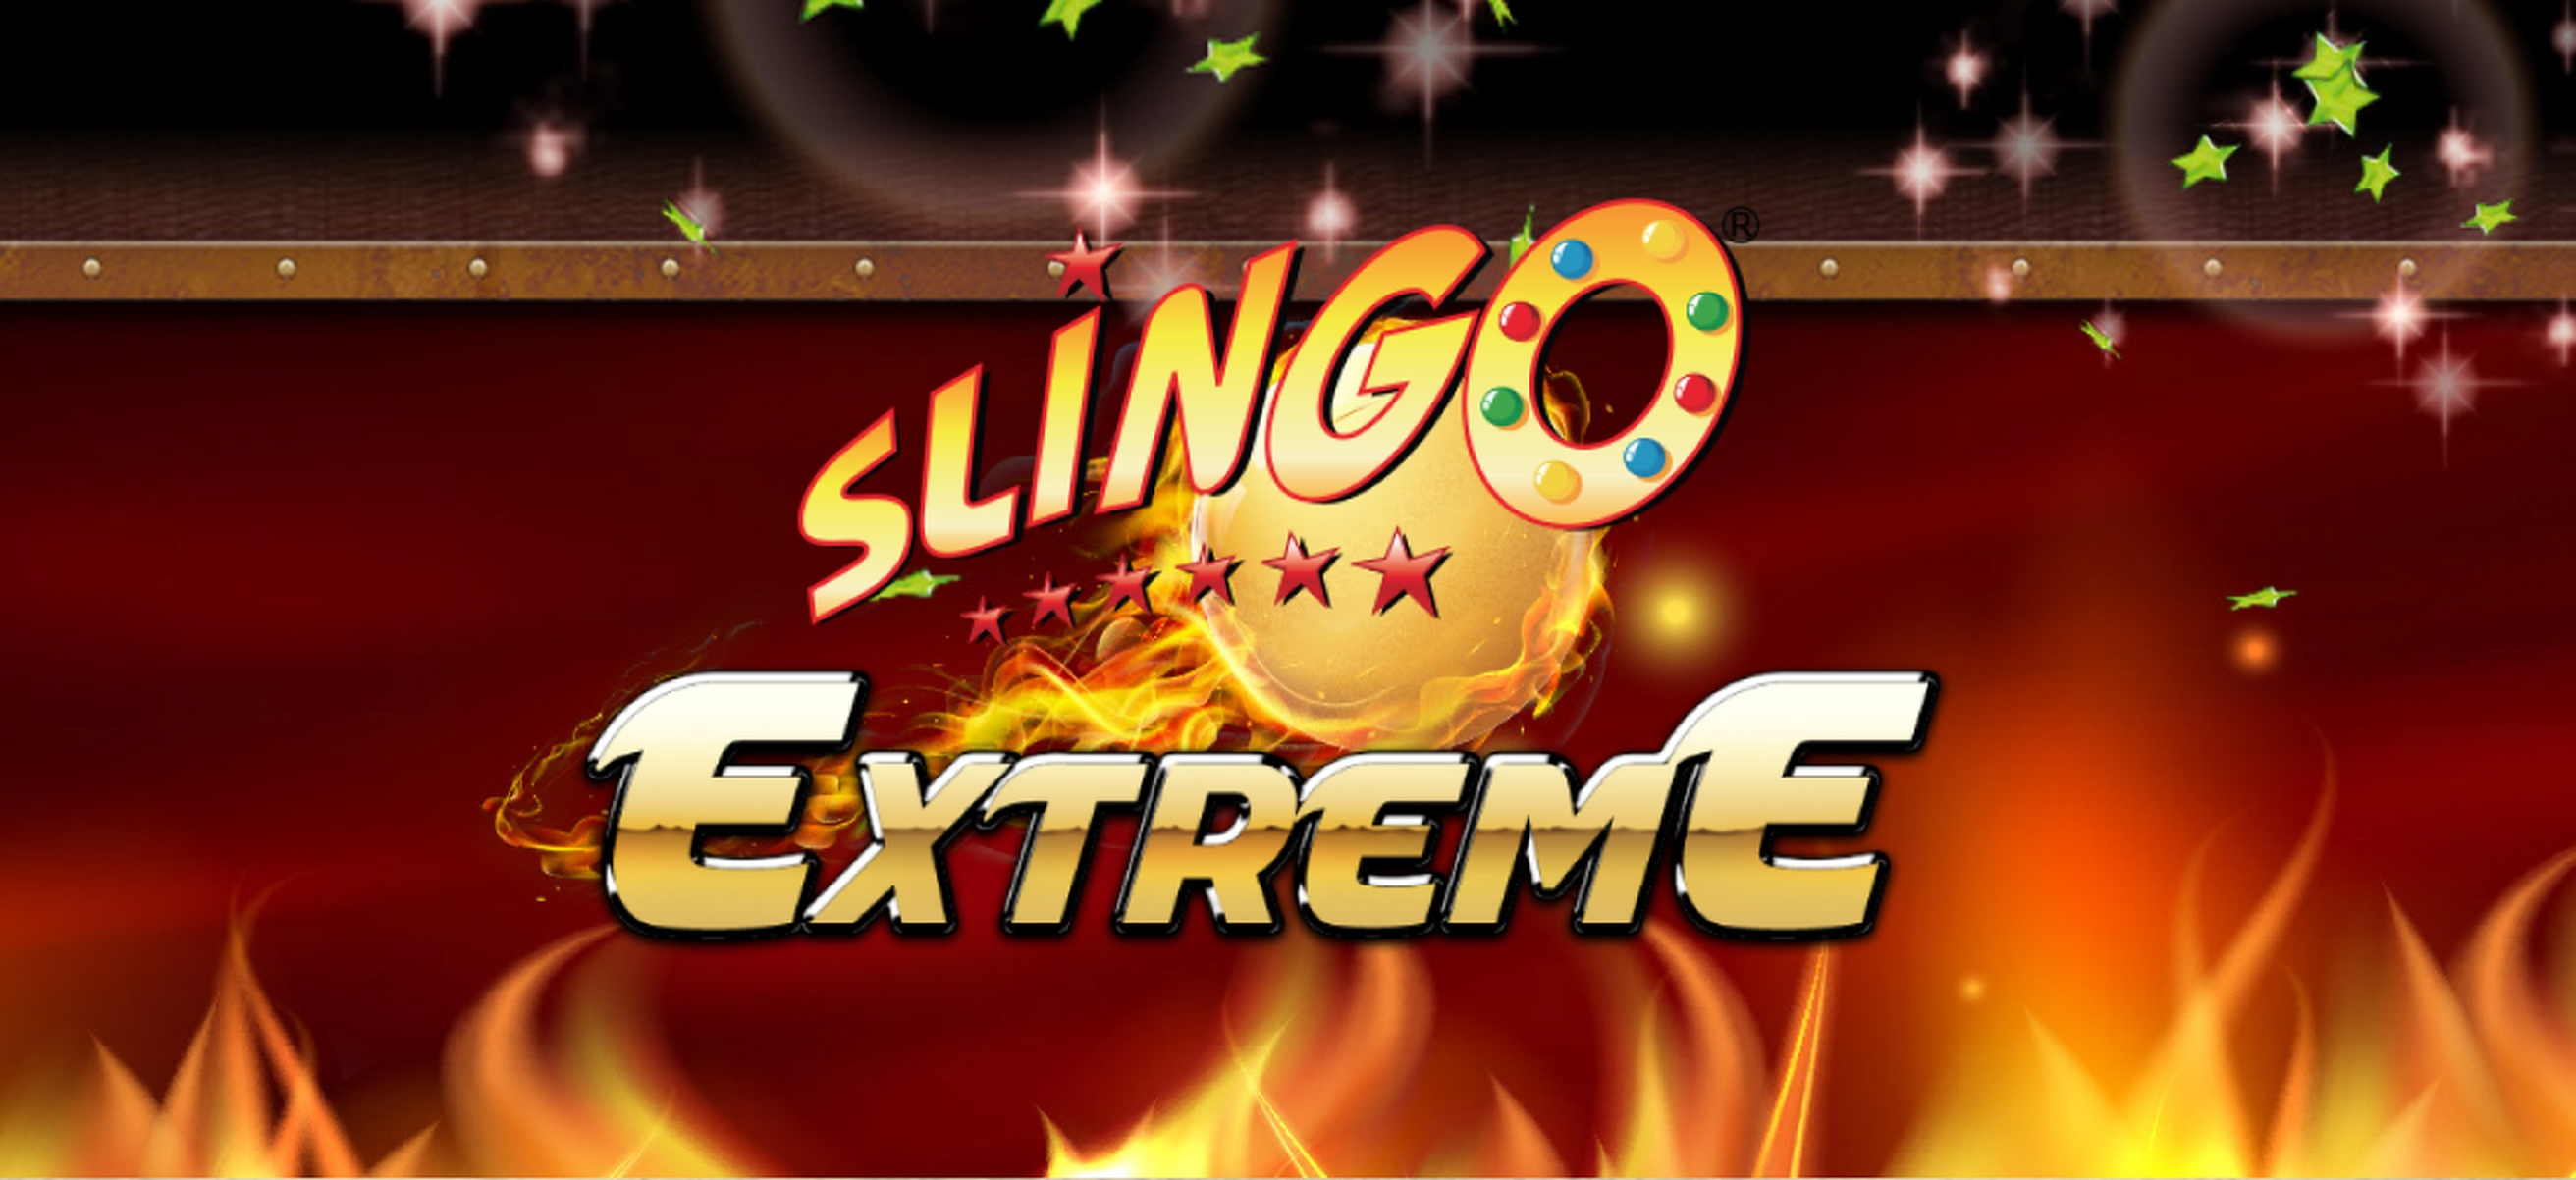 Slingo Extreme Online Slot Demo Game by Slingo